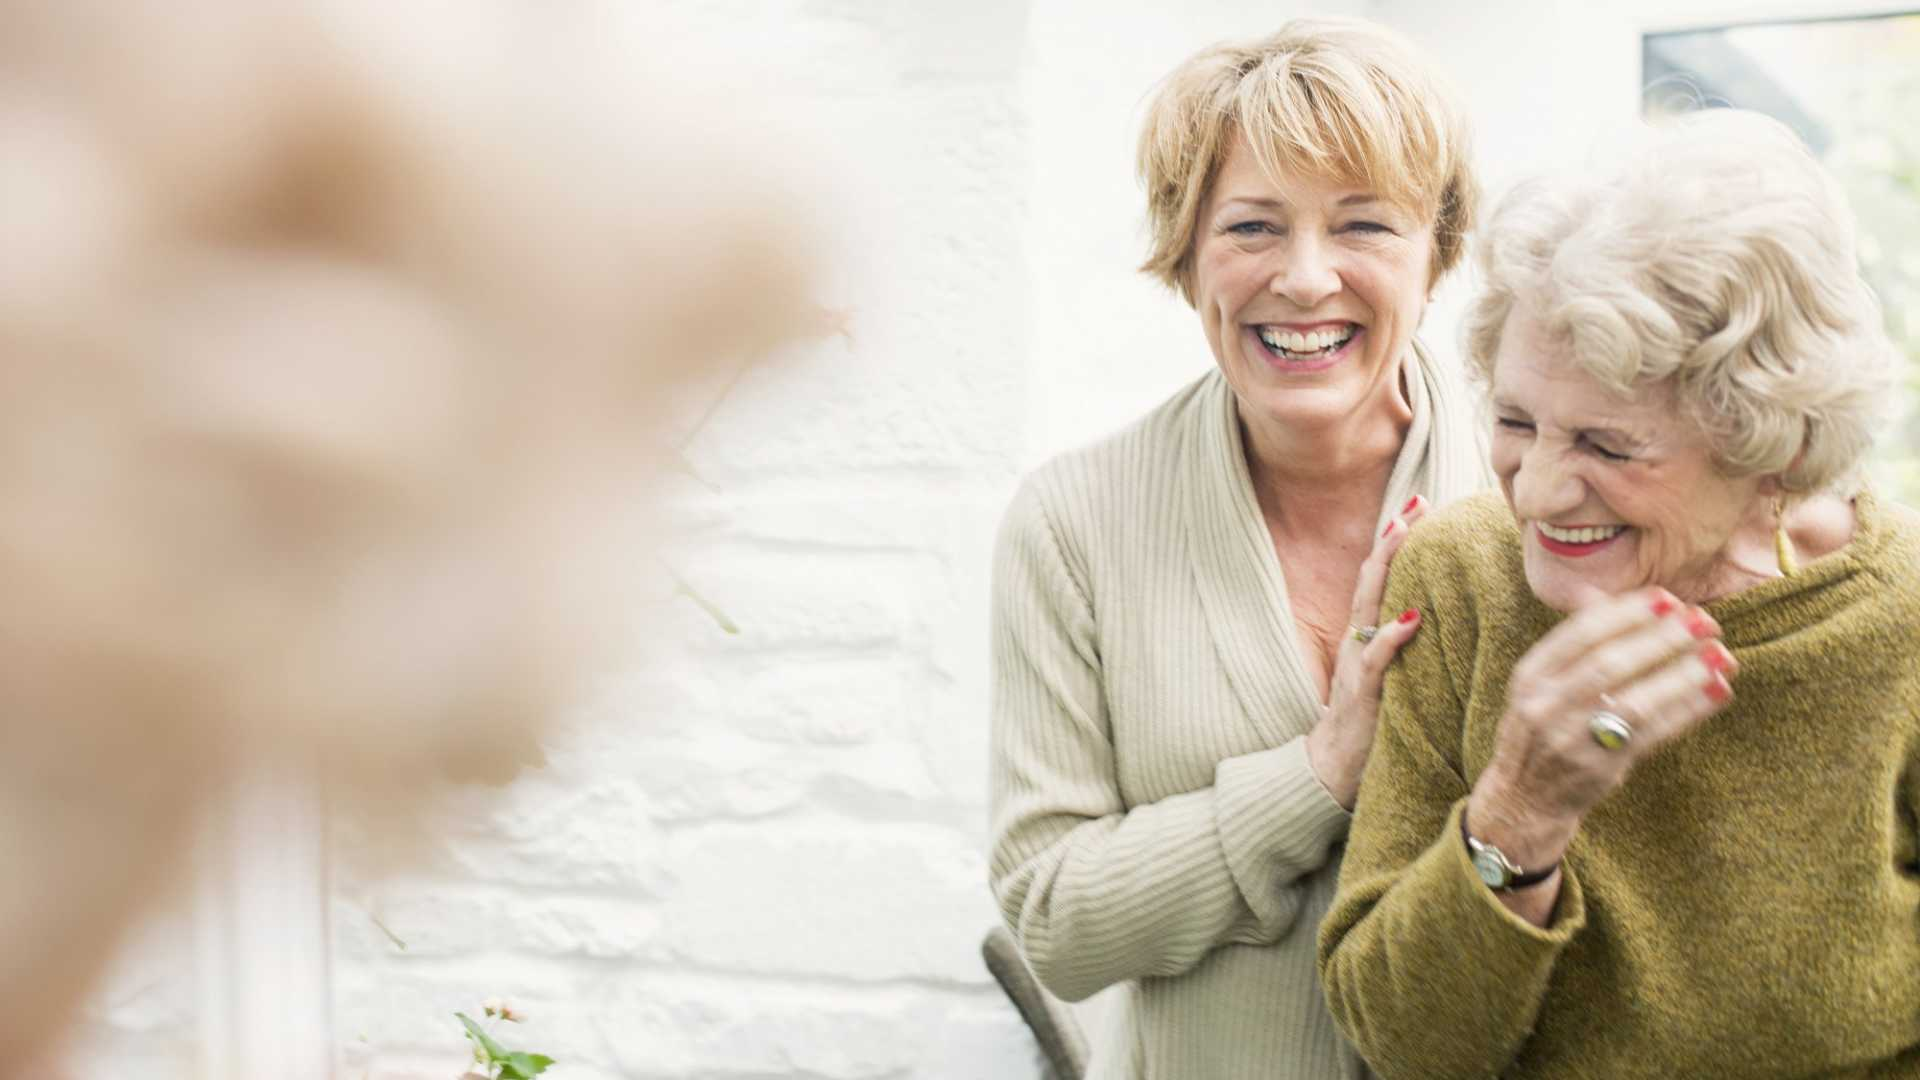 Want to Live Longer? Science Says Having Good, Solid Friendships Is Key